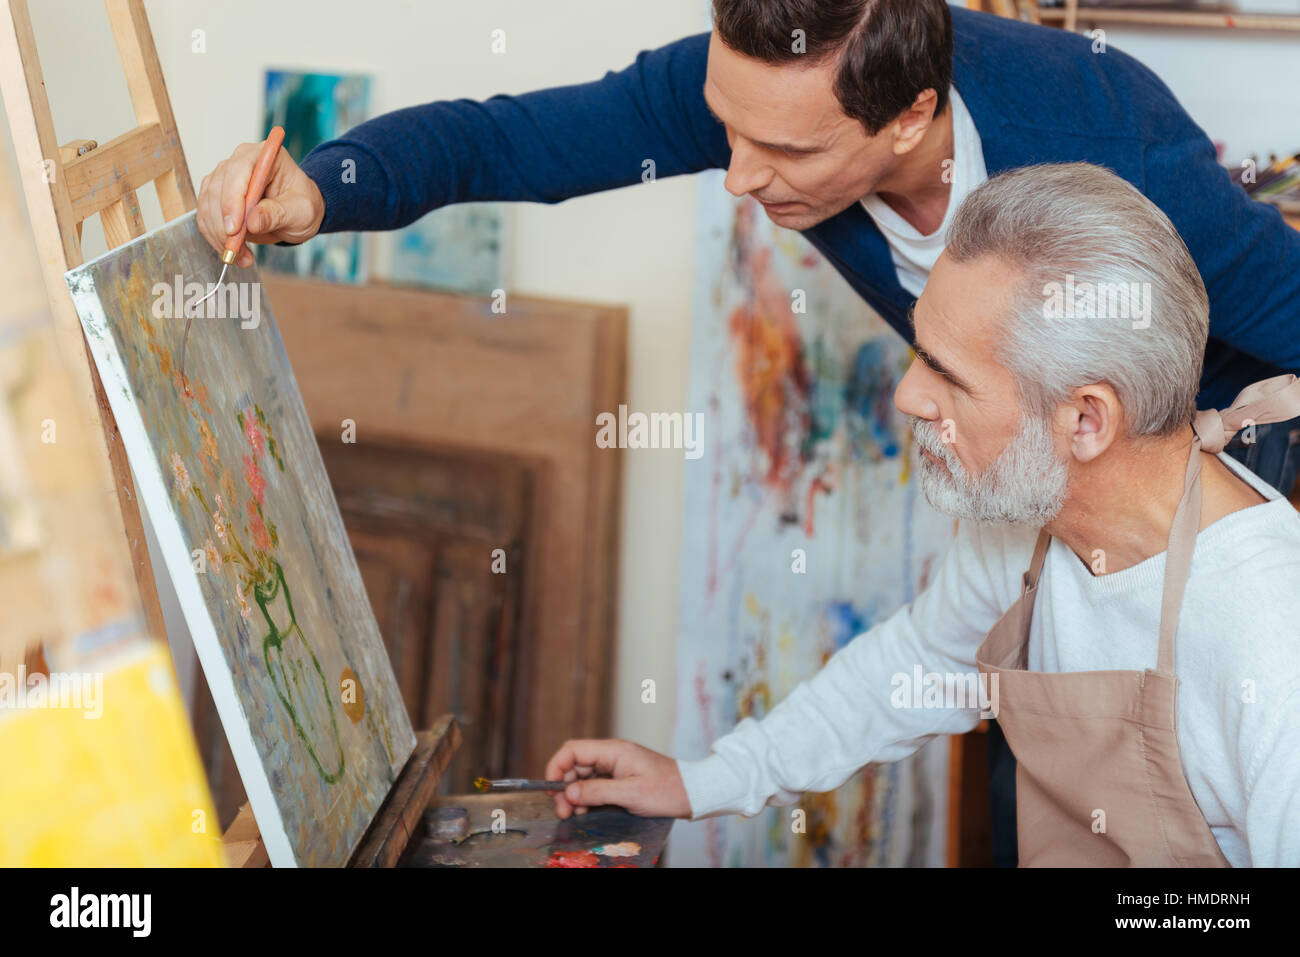 Concentrated artist helping elderly man in painting - Stock Image